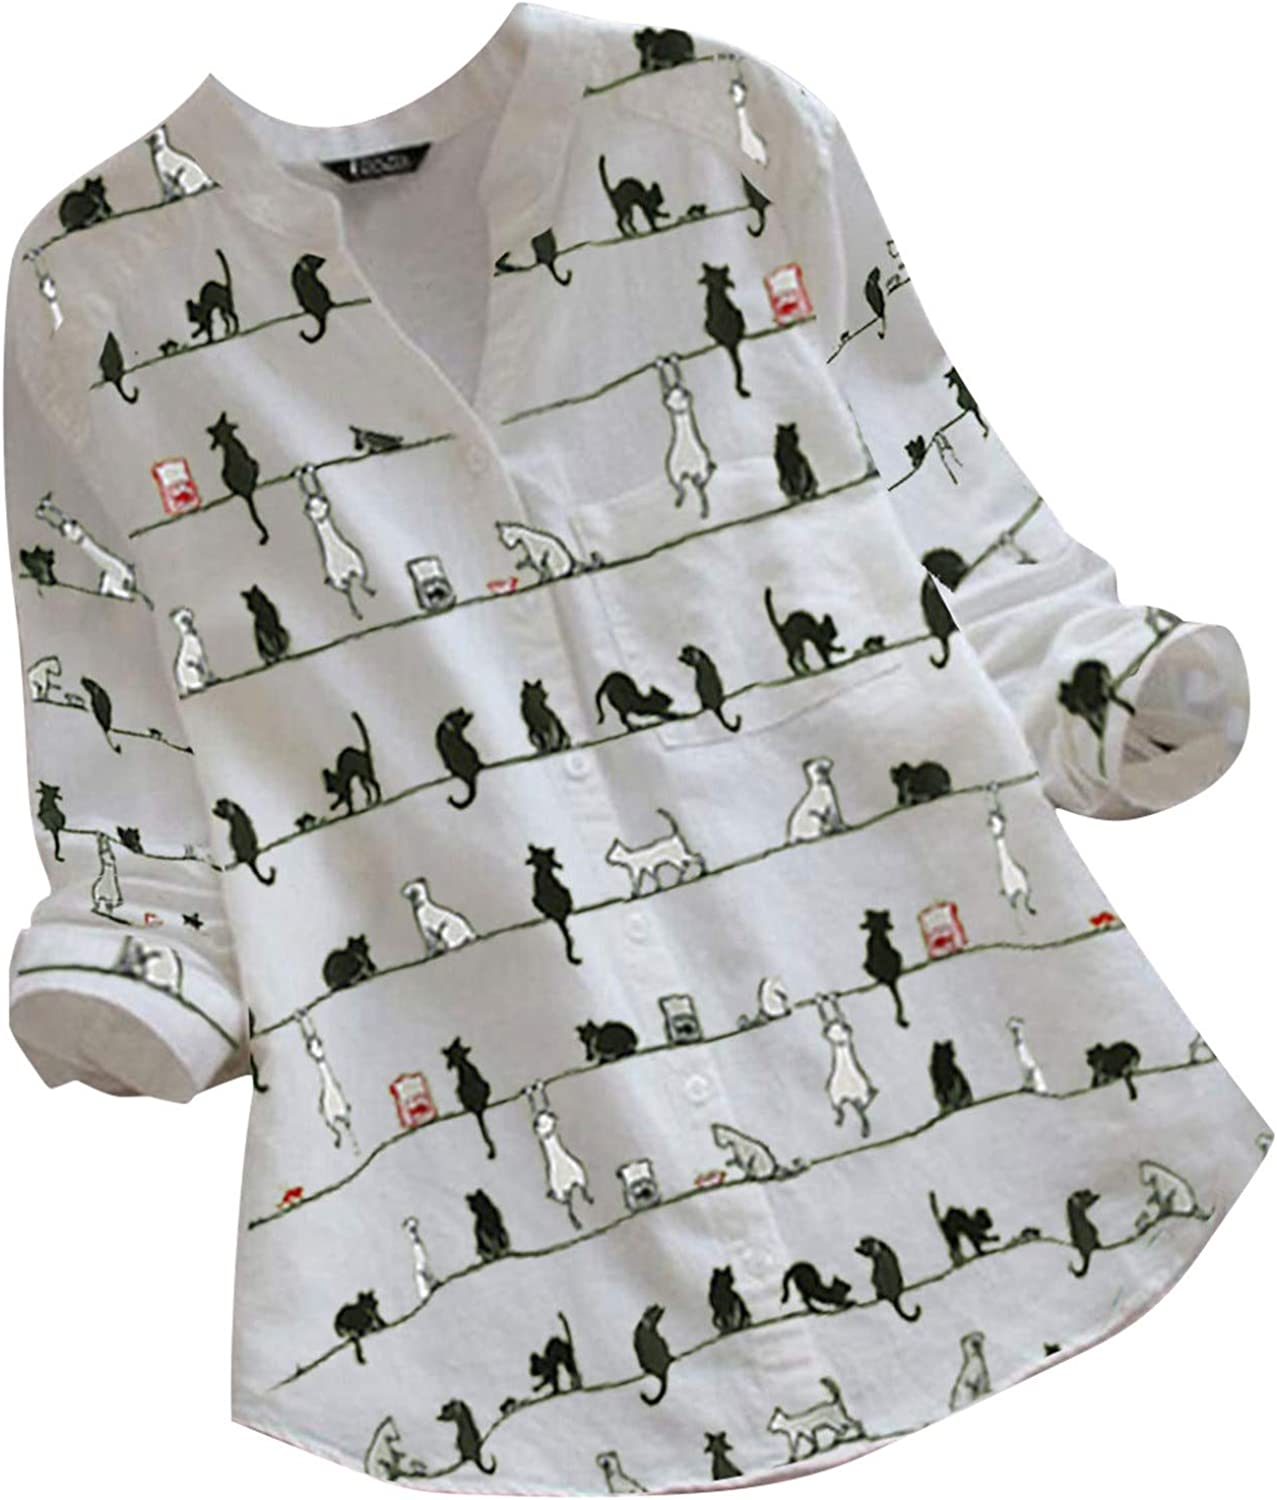 Women's Cute Oversized Shirts Button Down Blouses Fashion Cat Print Long Sleeve Tunic Tops V Neck Loose Comfy Tshirts